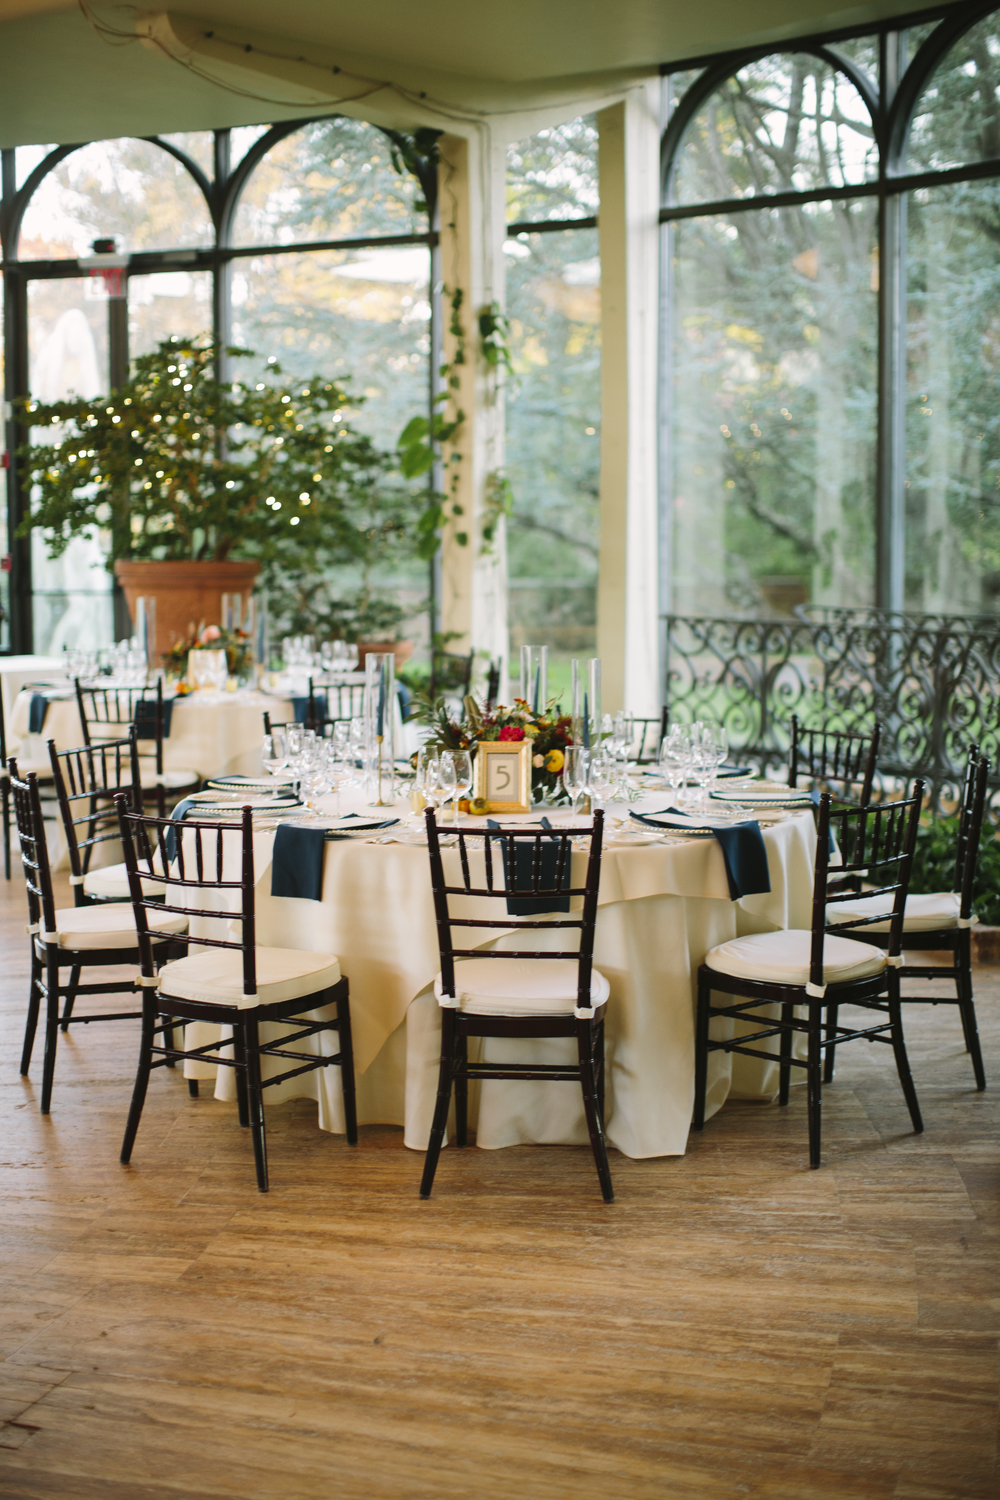 A Garden Party Florist, Jasna Polana, Saltwater Studios Photography, Wild, Table Decor